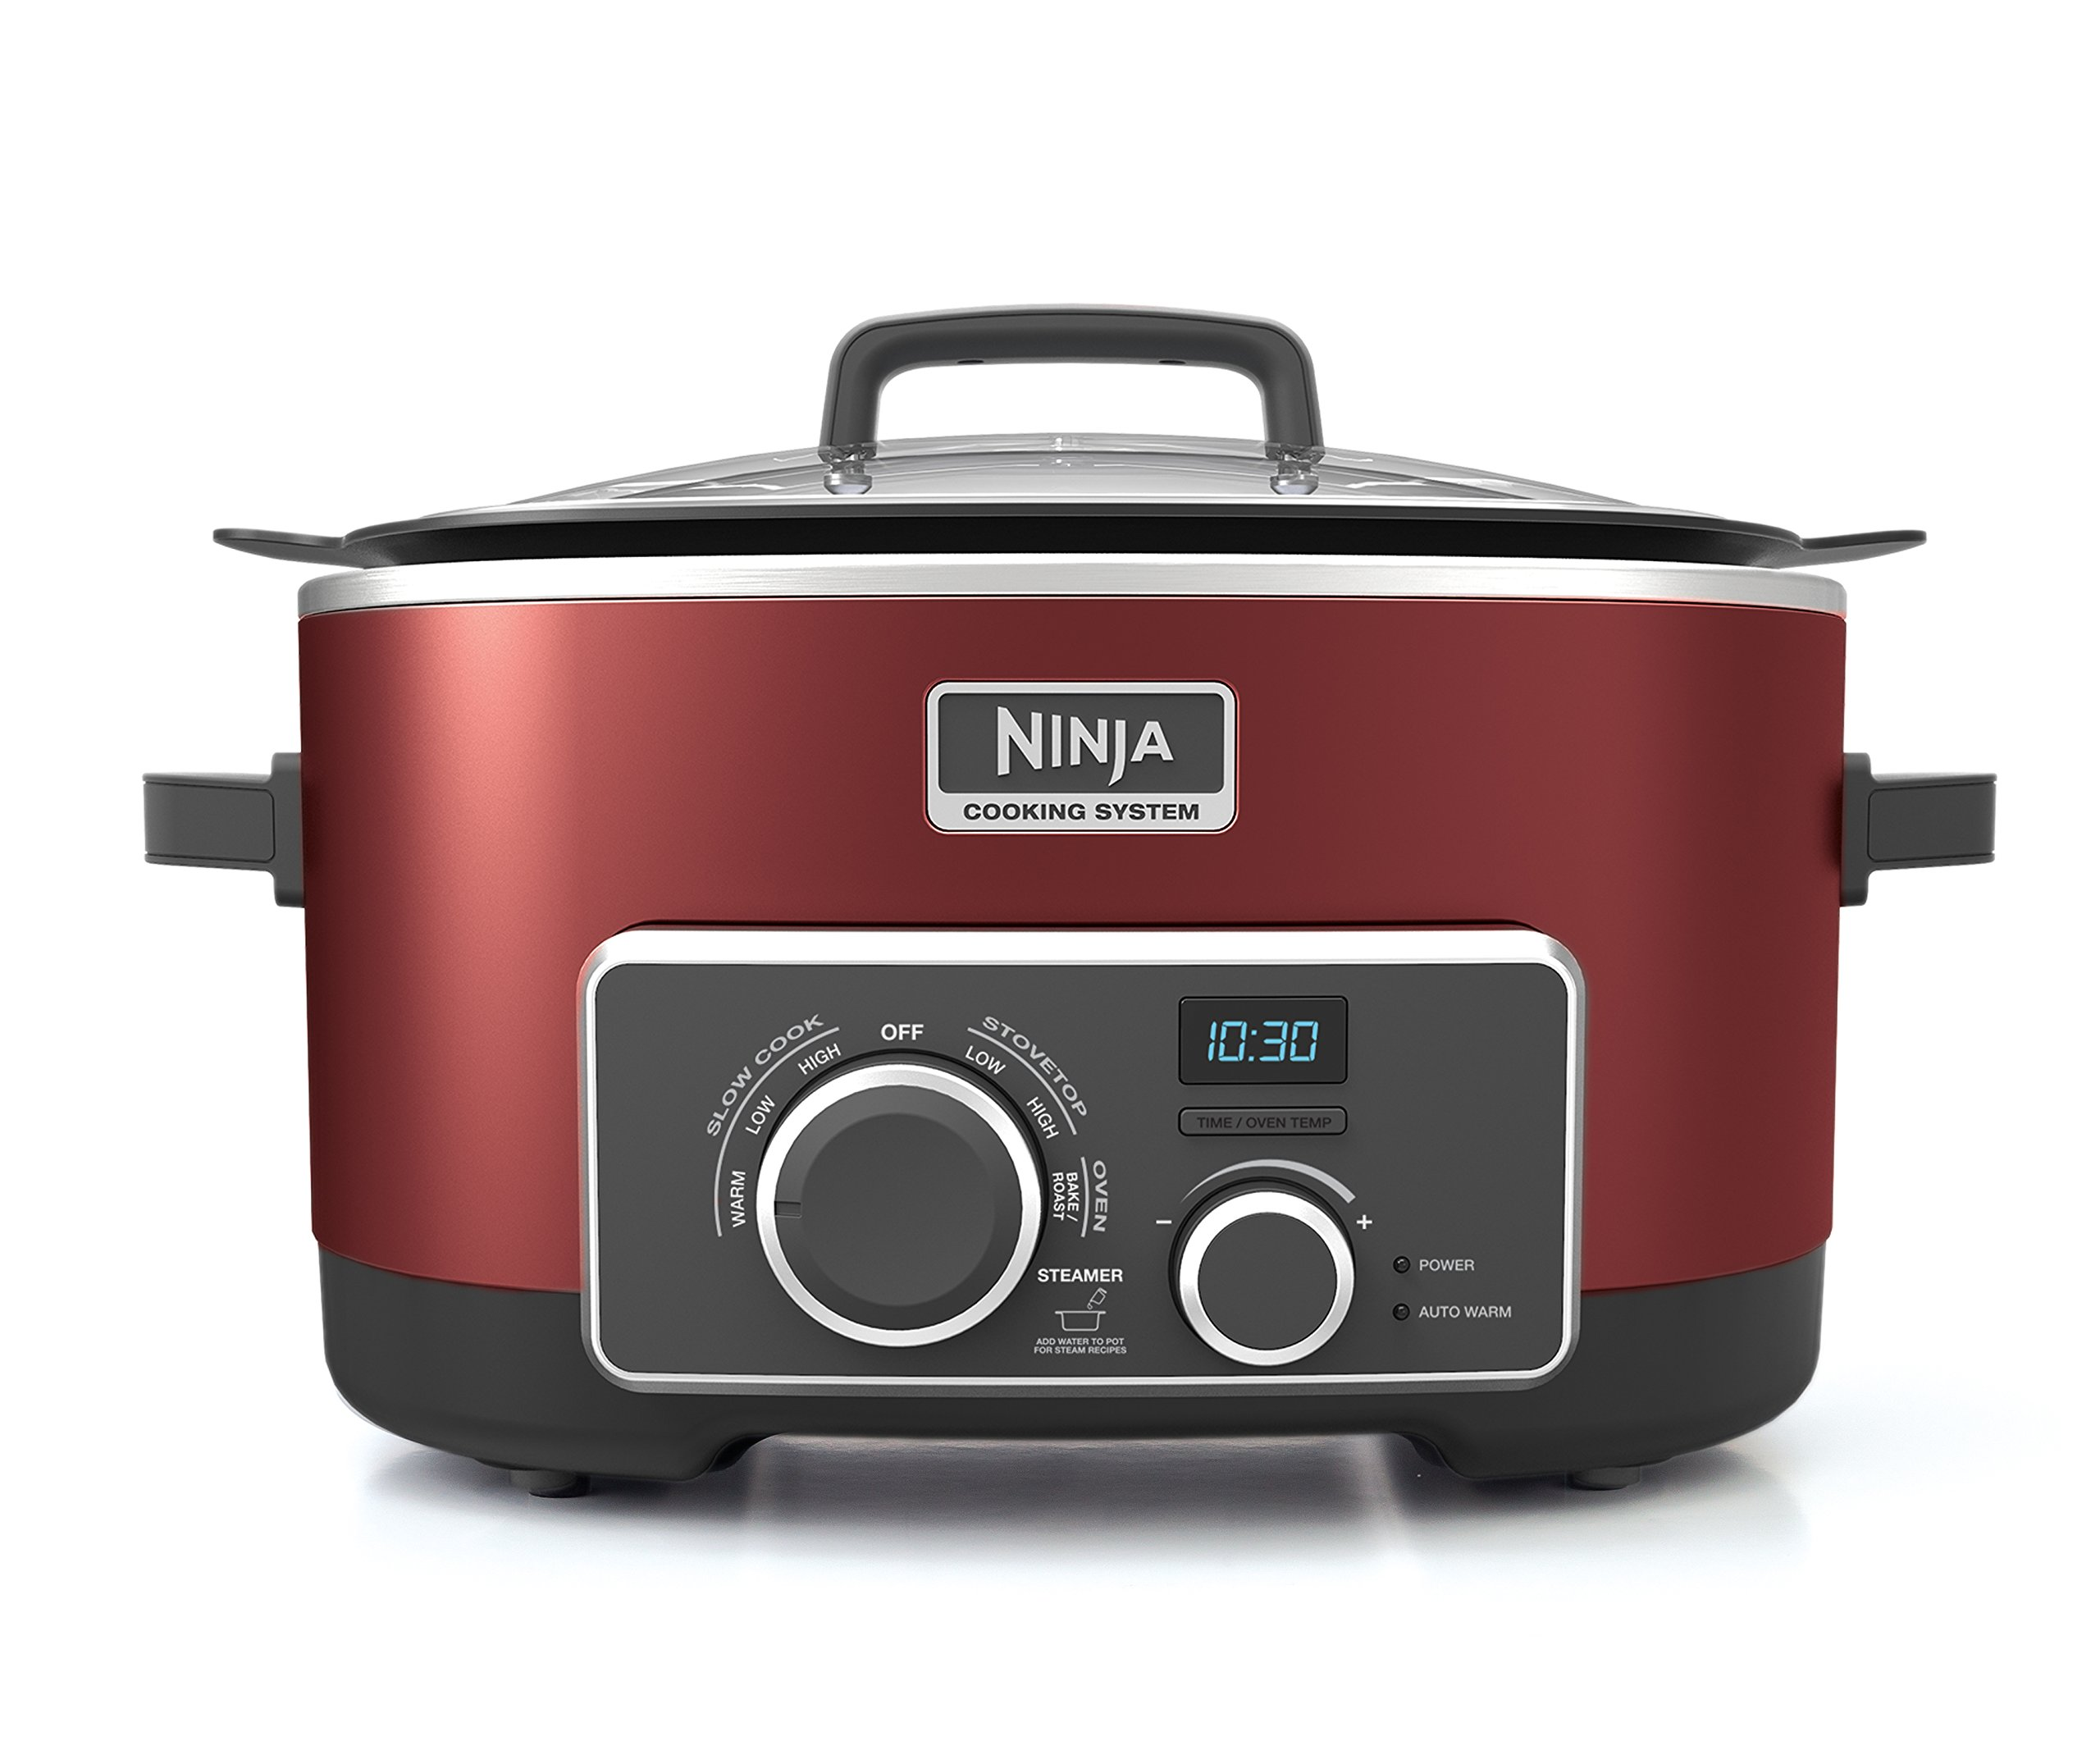 Ninja Multi-Cooker with 4-in-1 Stove Top, Oven, Steam and Slow Cooker Options, 6-Quart Nonstick Pot, and Steaming/Roasting Rack  (MC950ZCN), Red